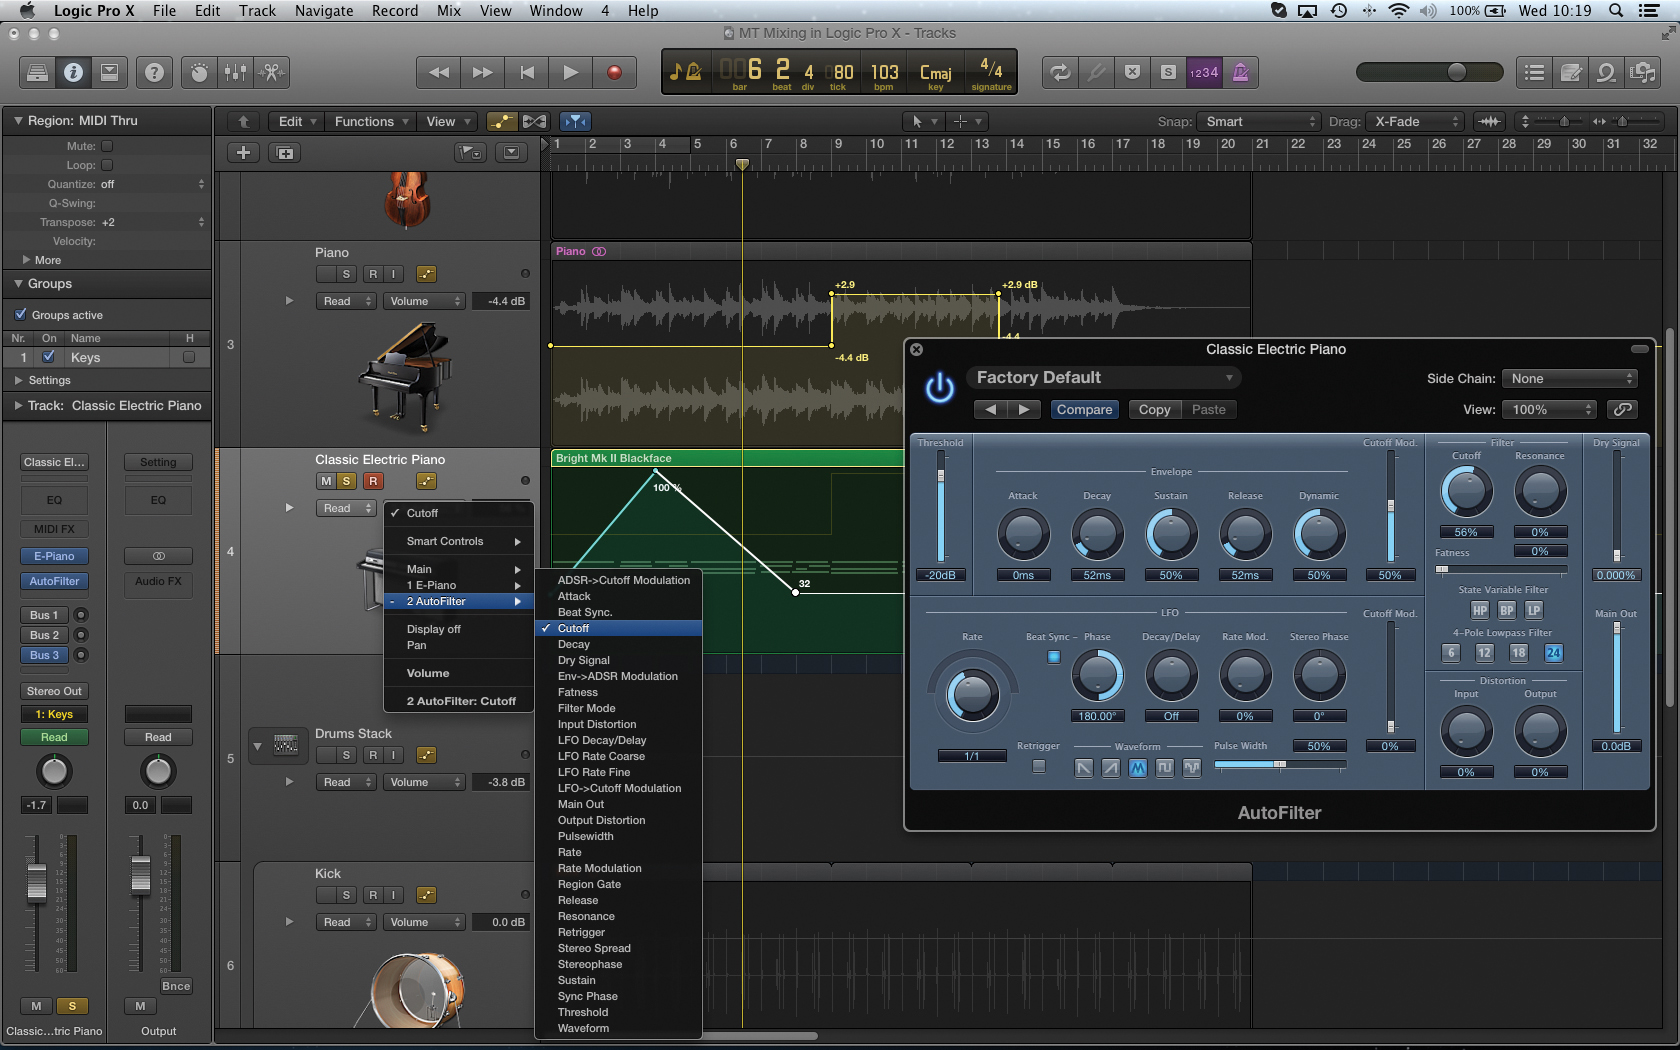 logic pro x user manual